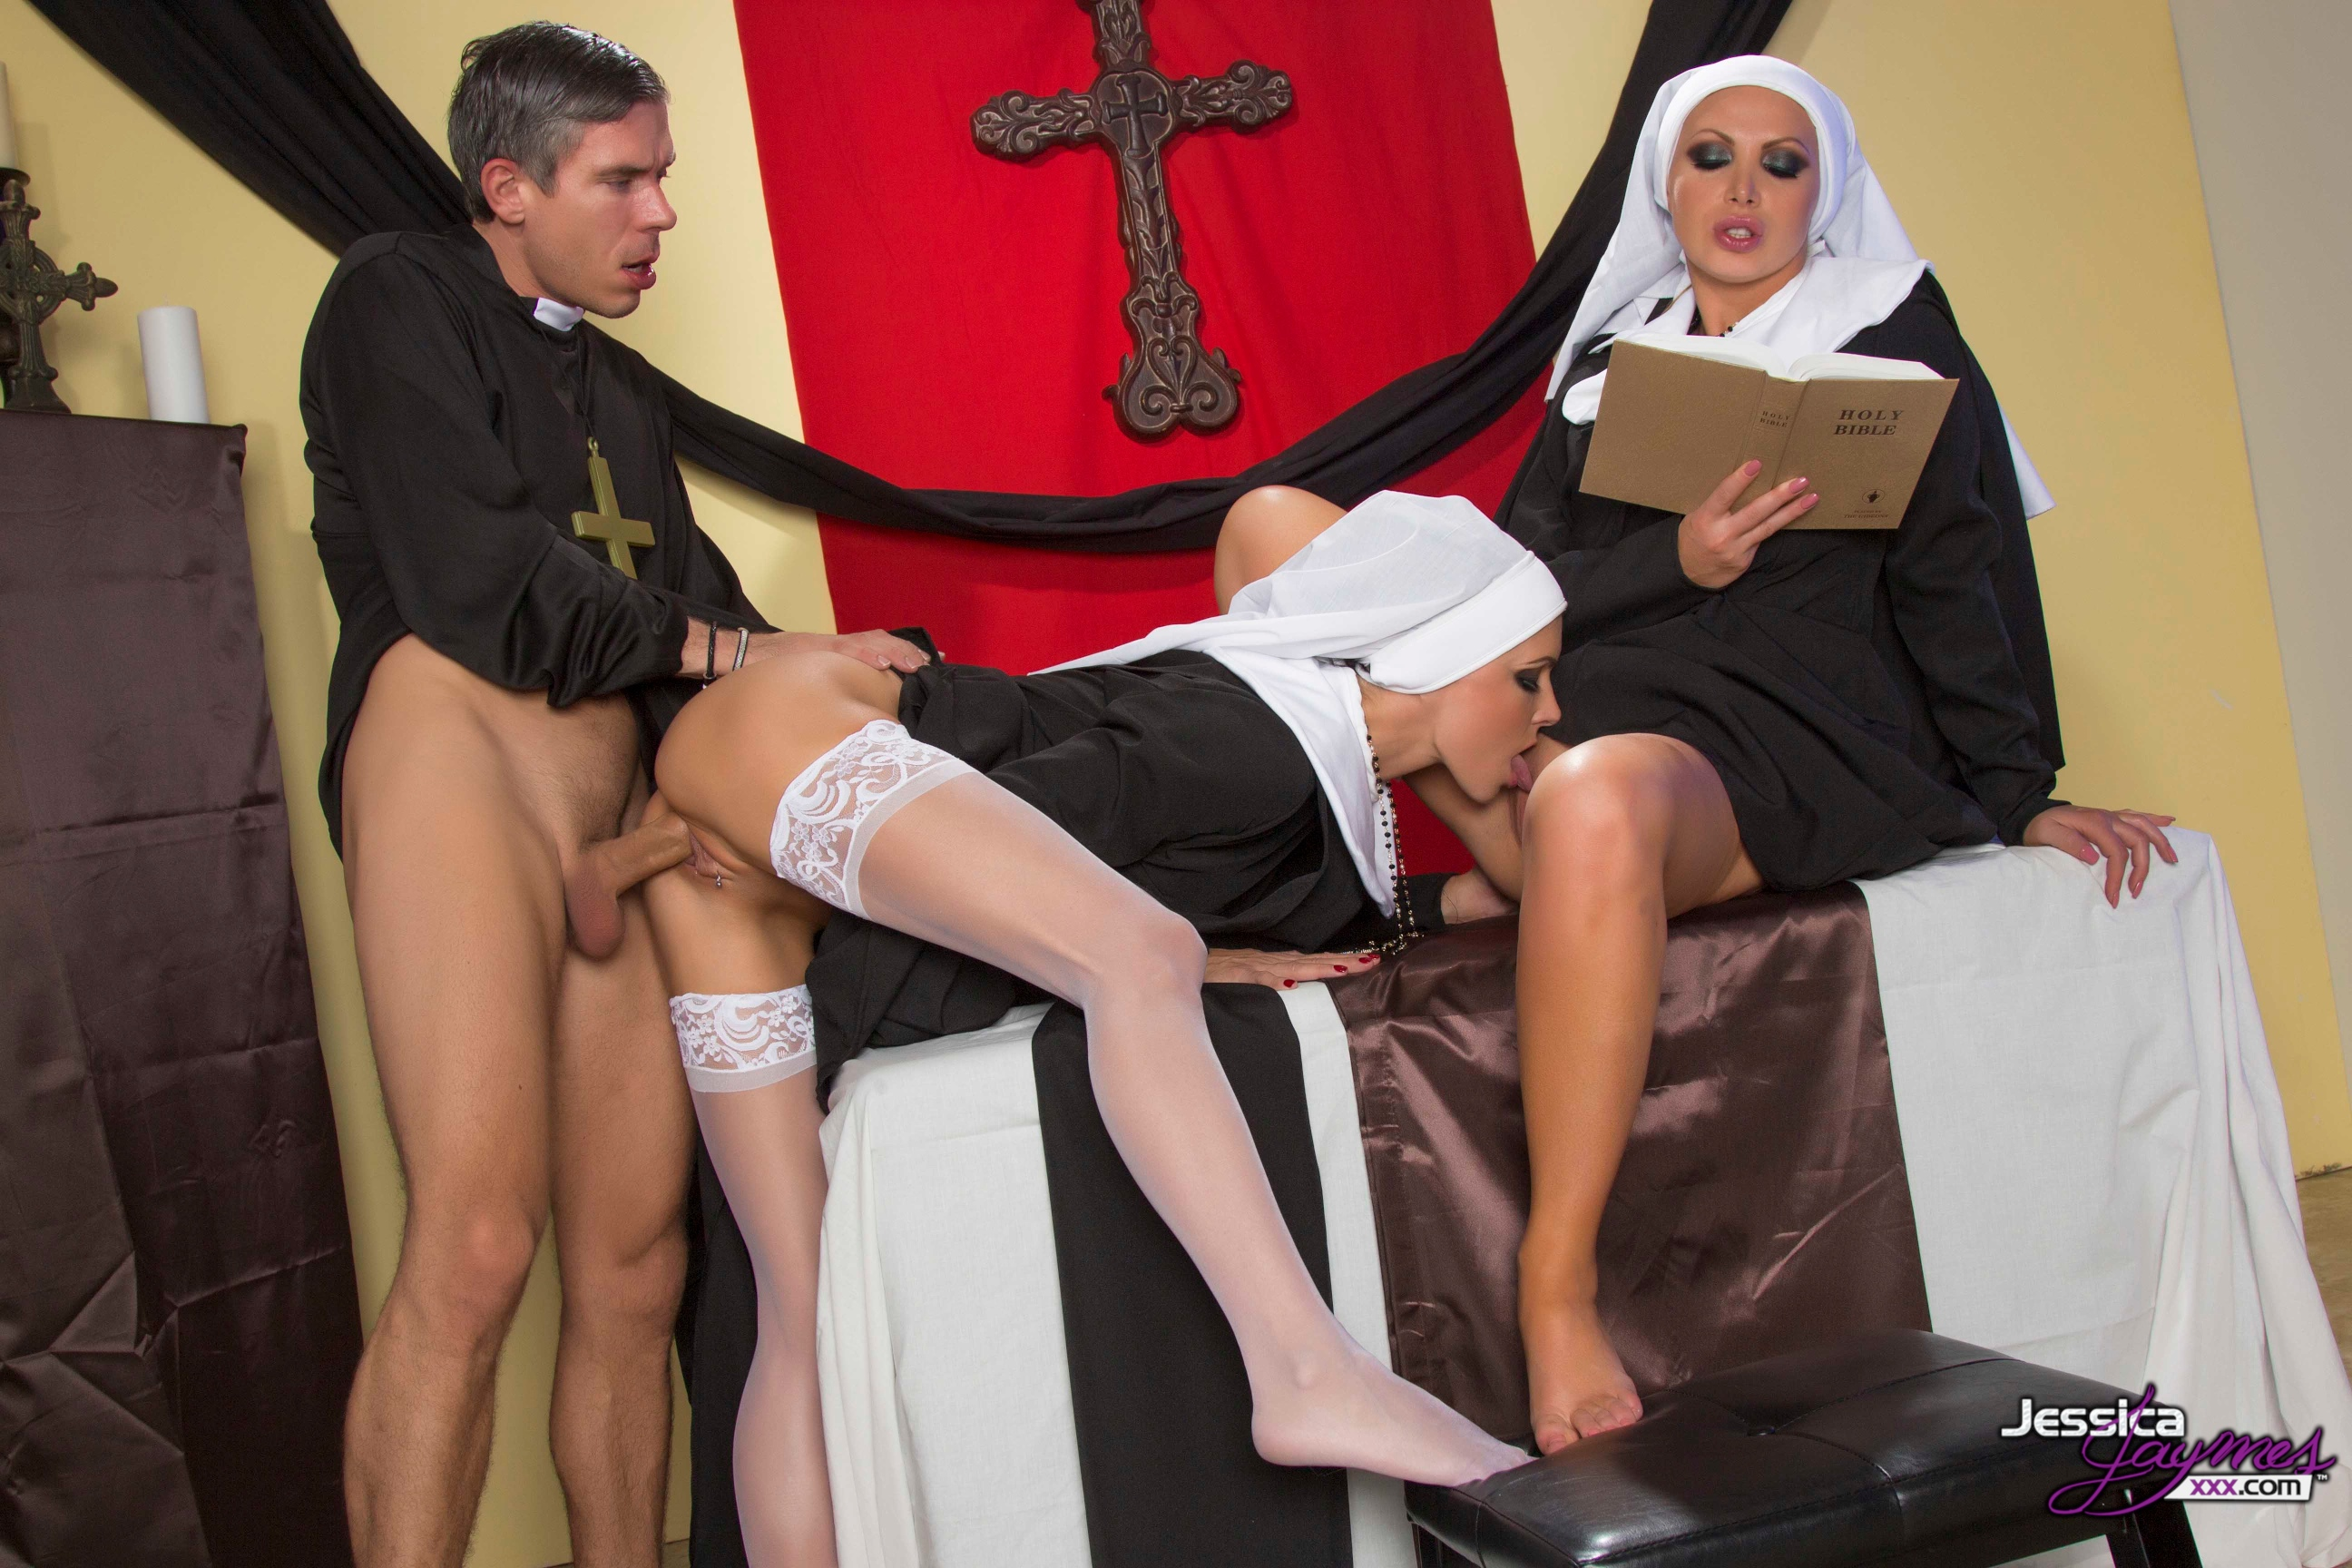 Hot sex fuck priest pics erotica galleries